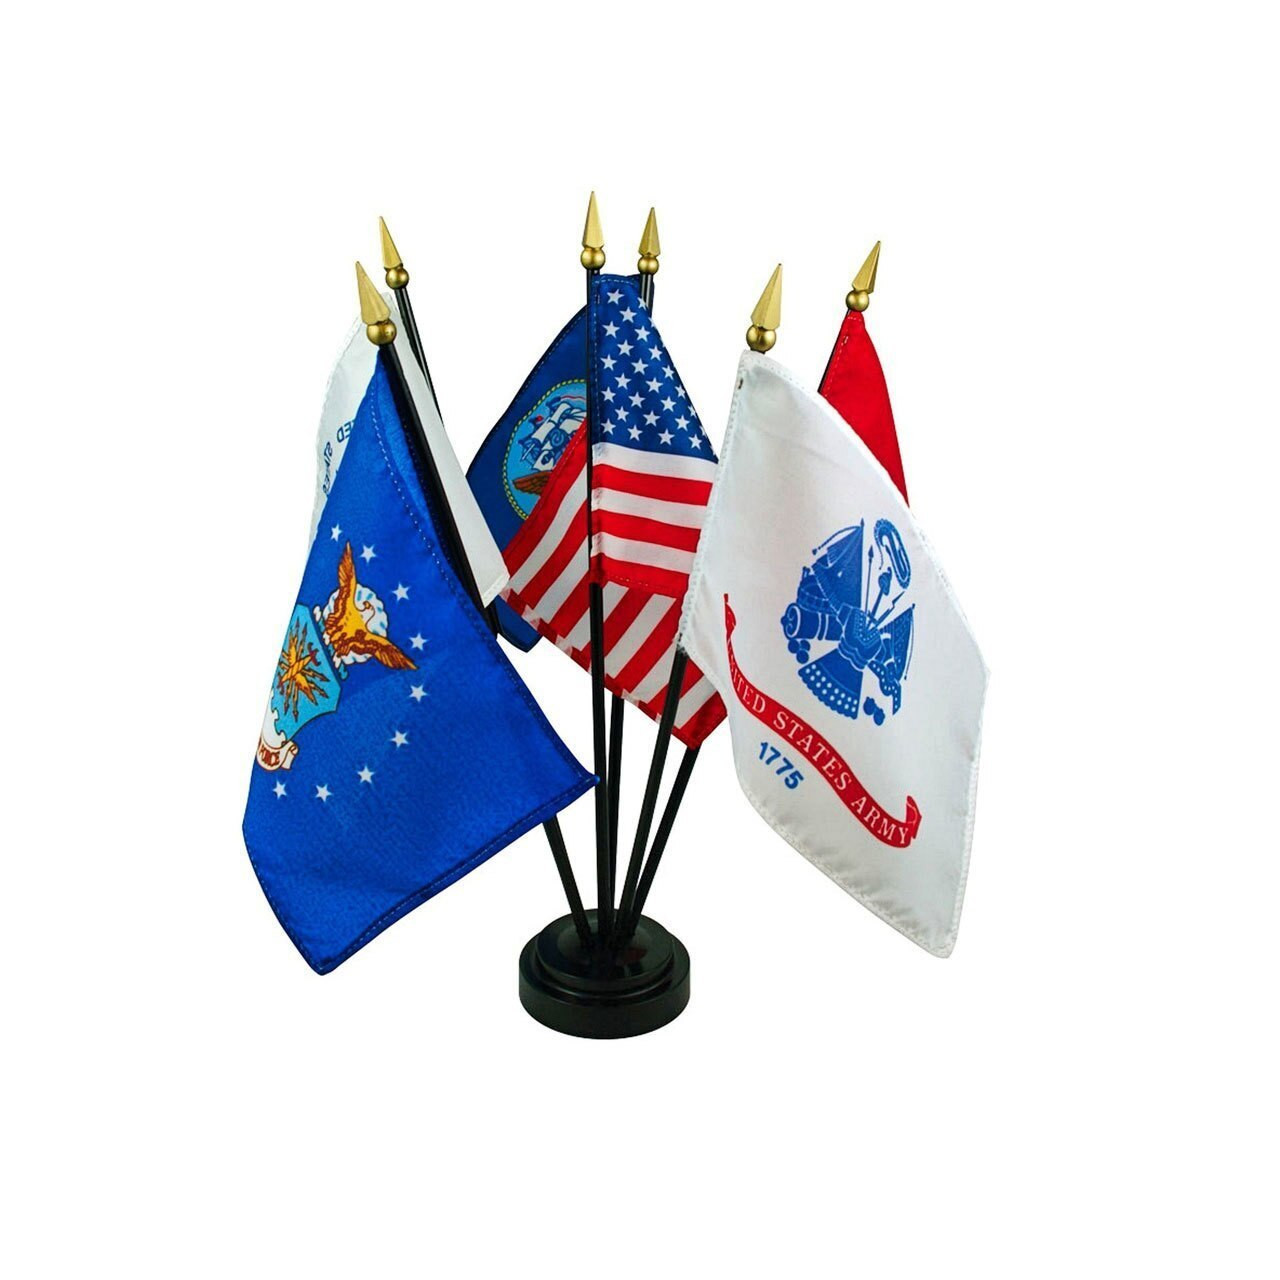 Complete Set of Armed Forces Stick Flags